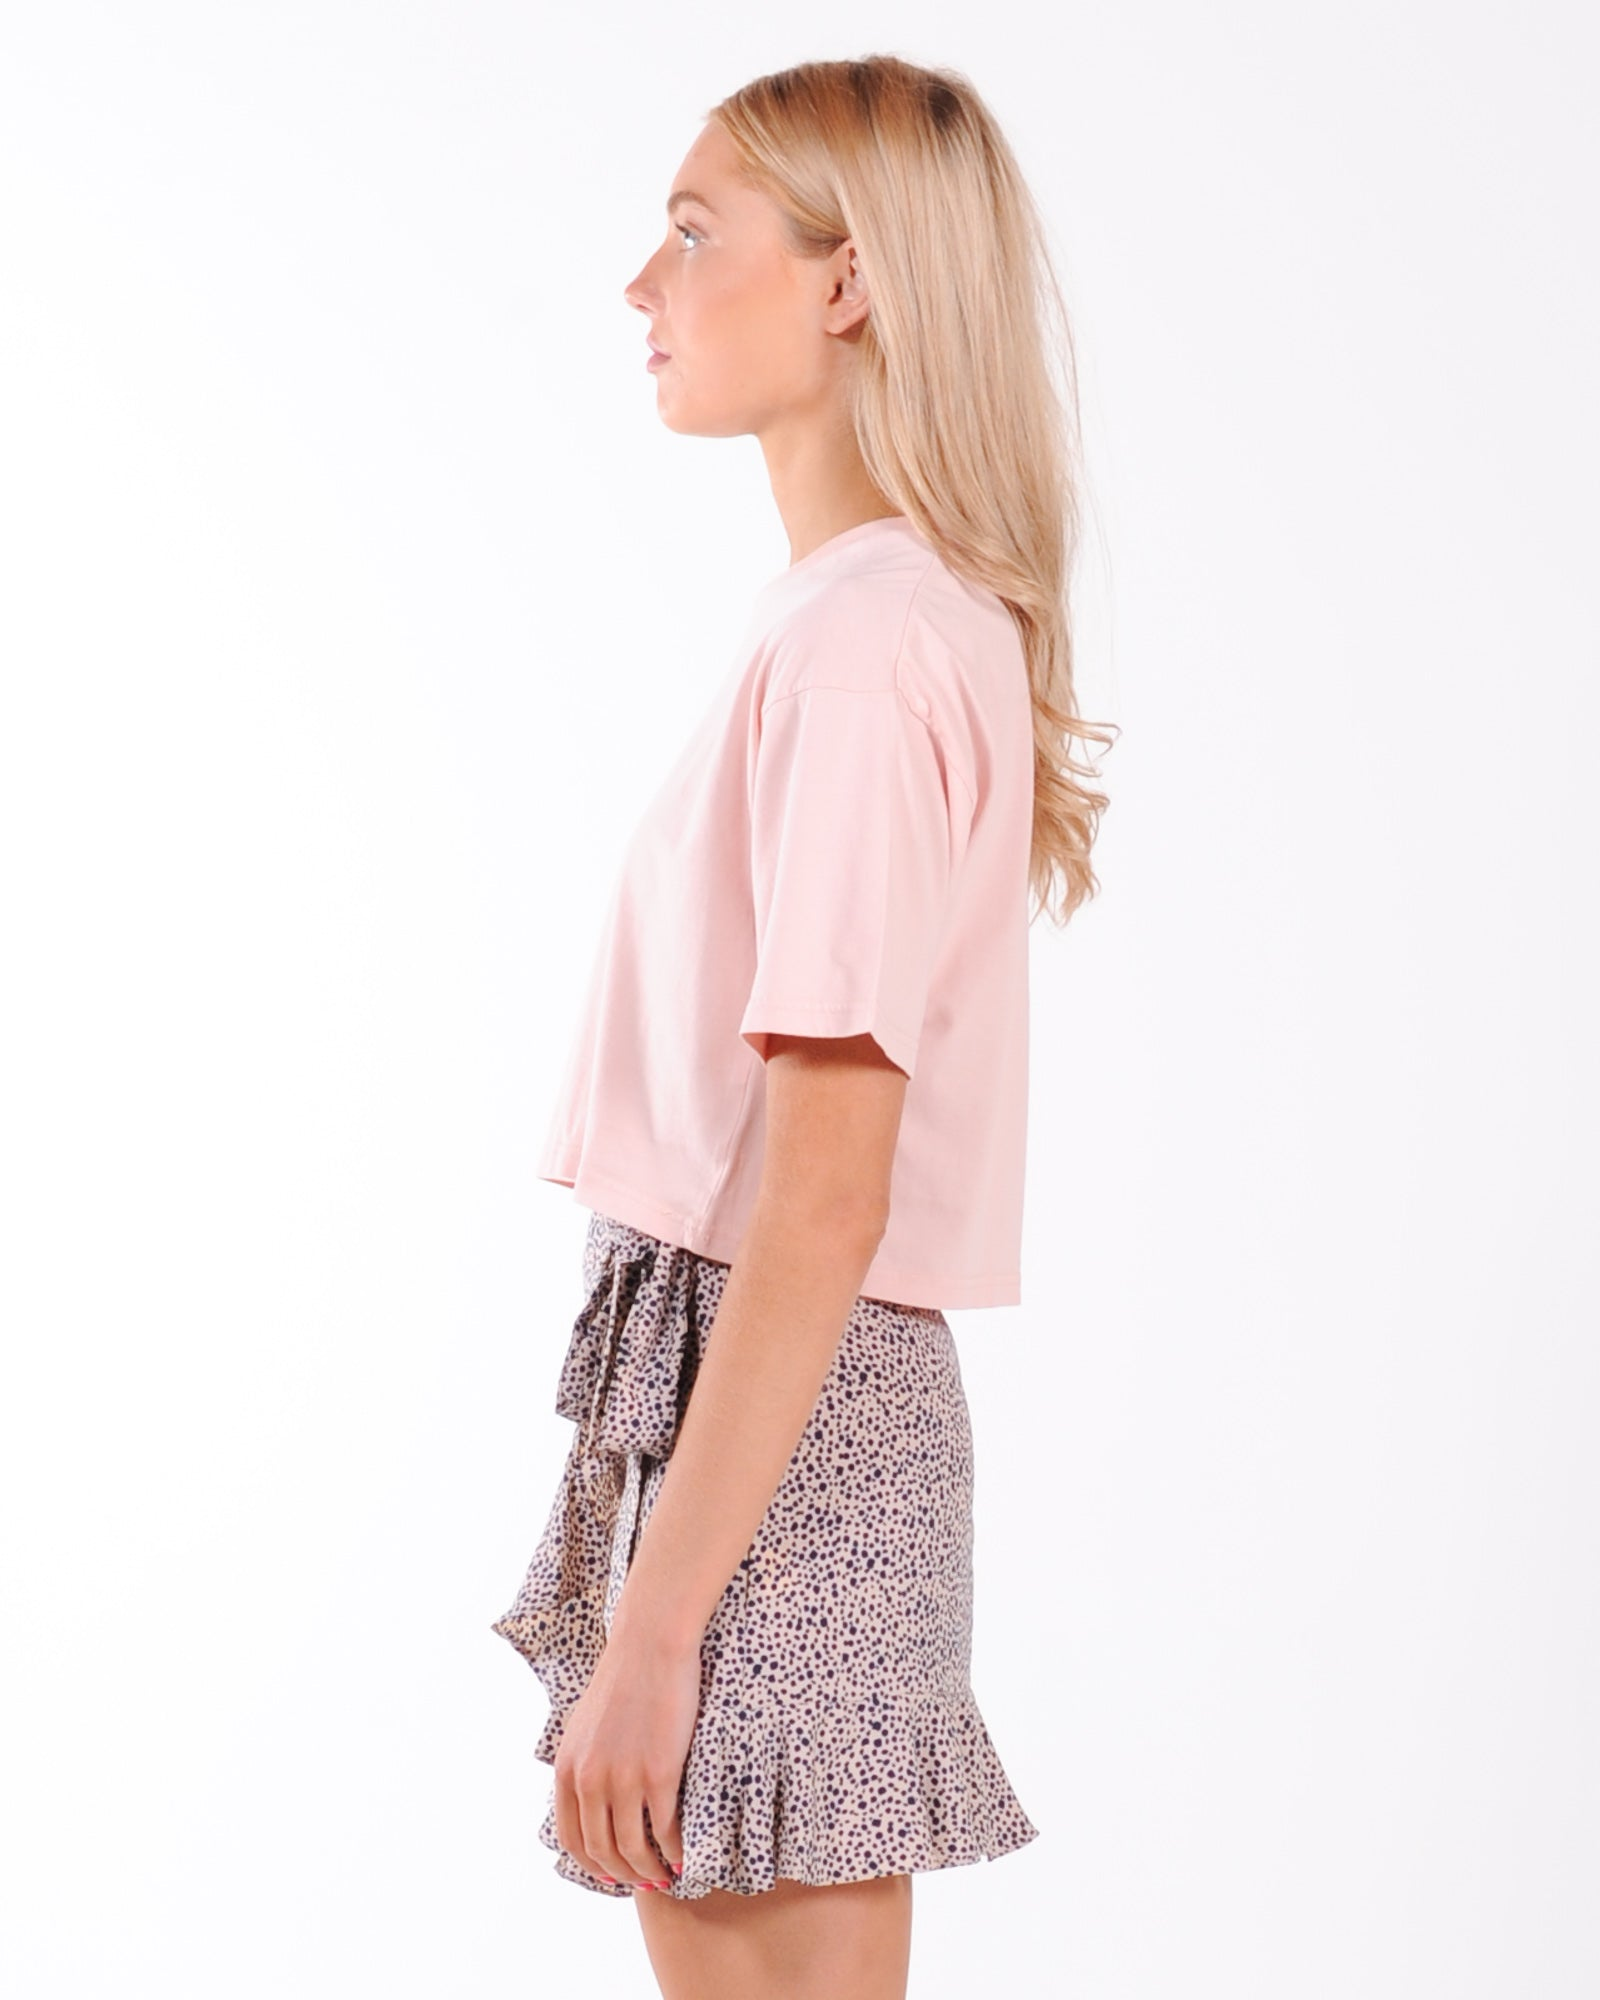 Silent Theory Relaxed Crop Tee - Musk